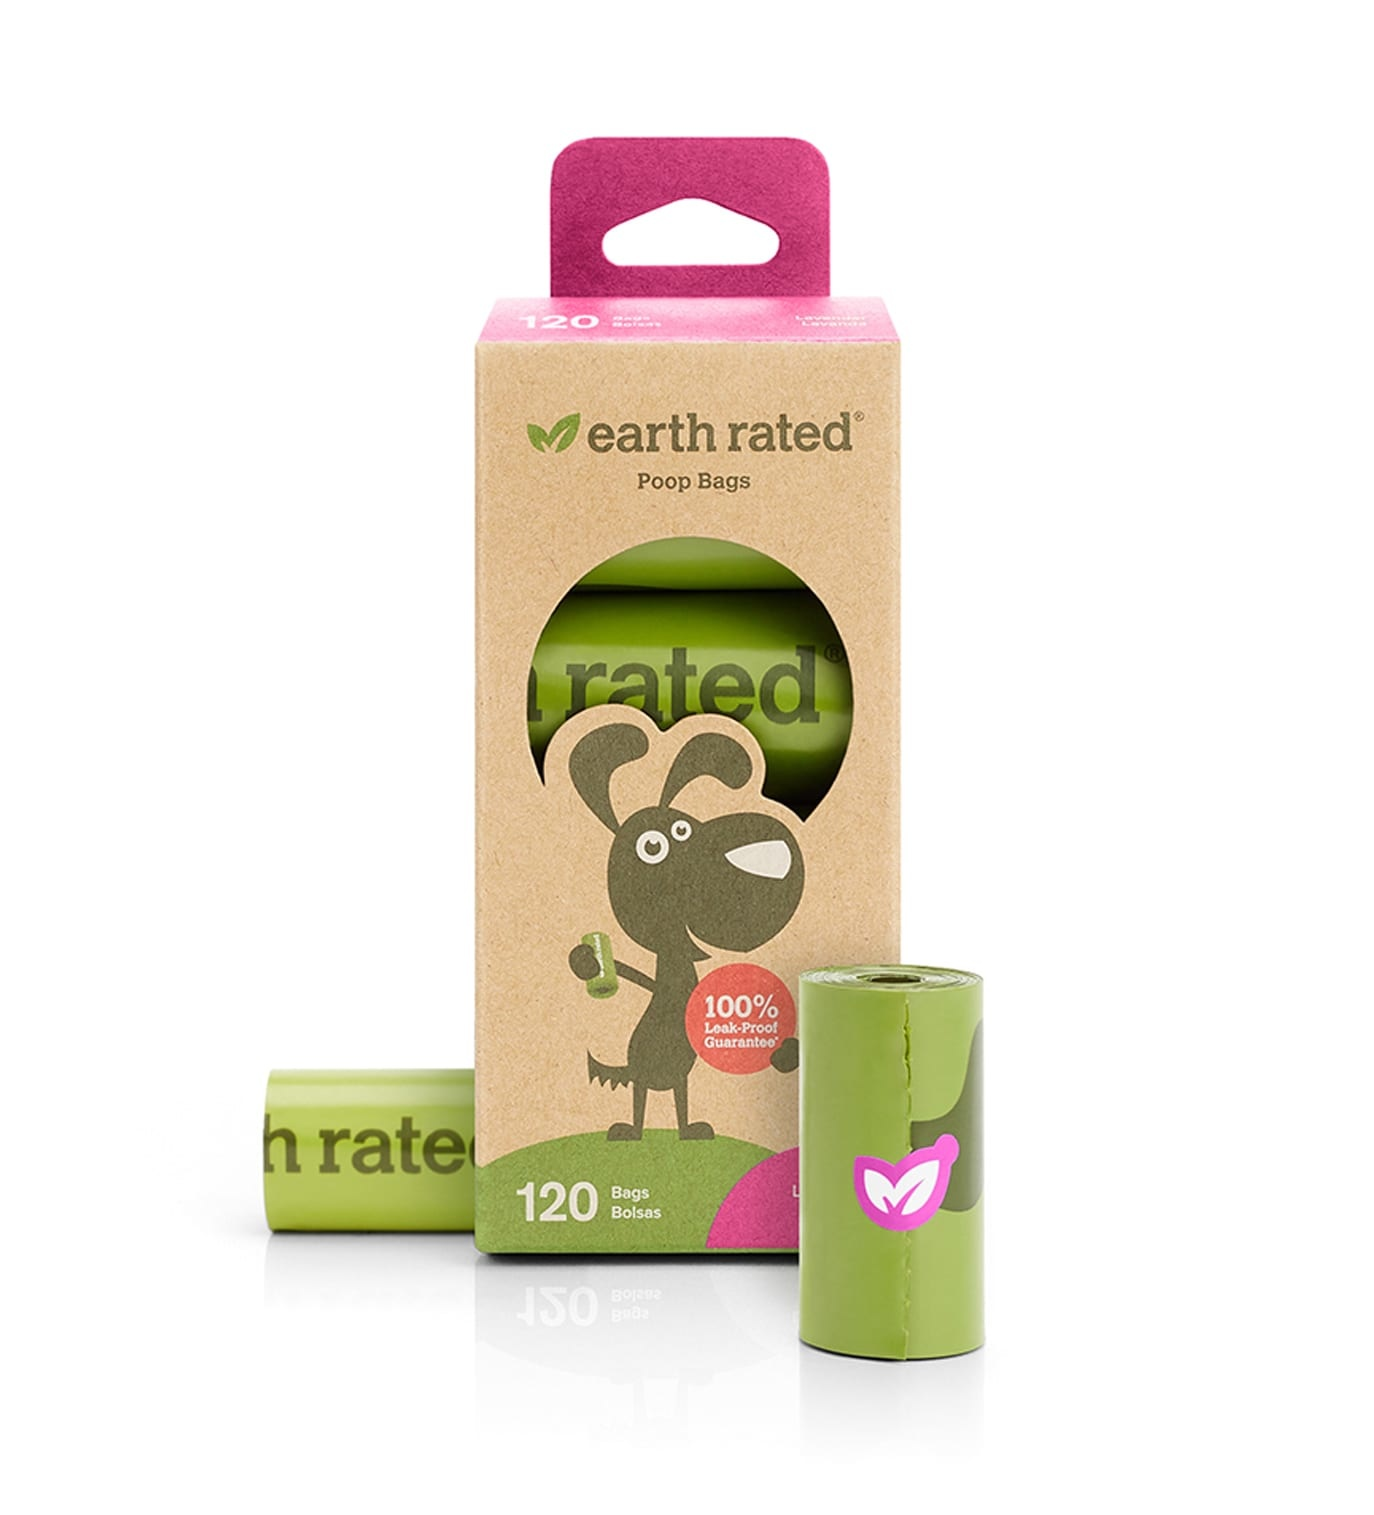 Earth Rated Earth Rated Poop Bags 8/120 Count